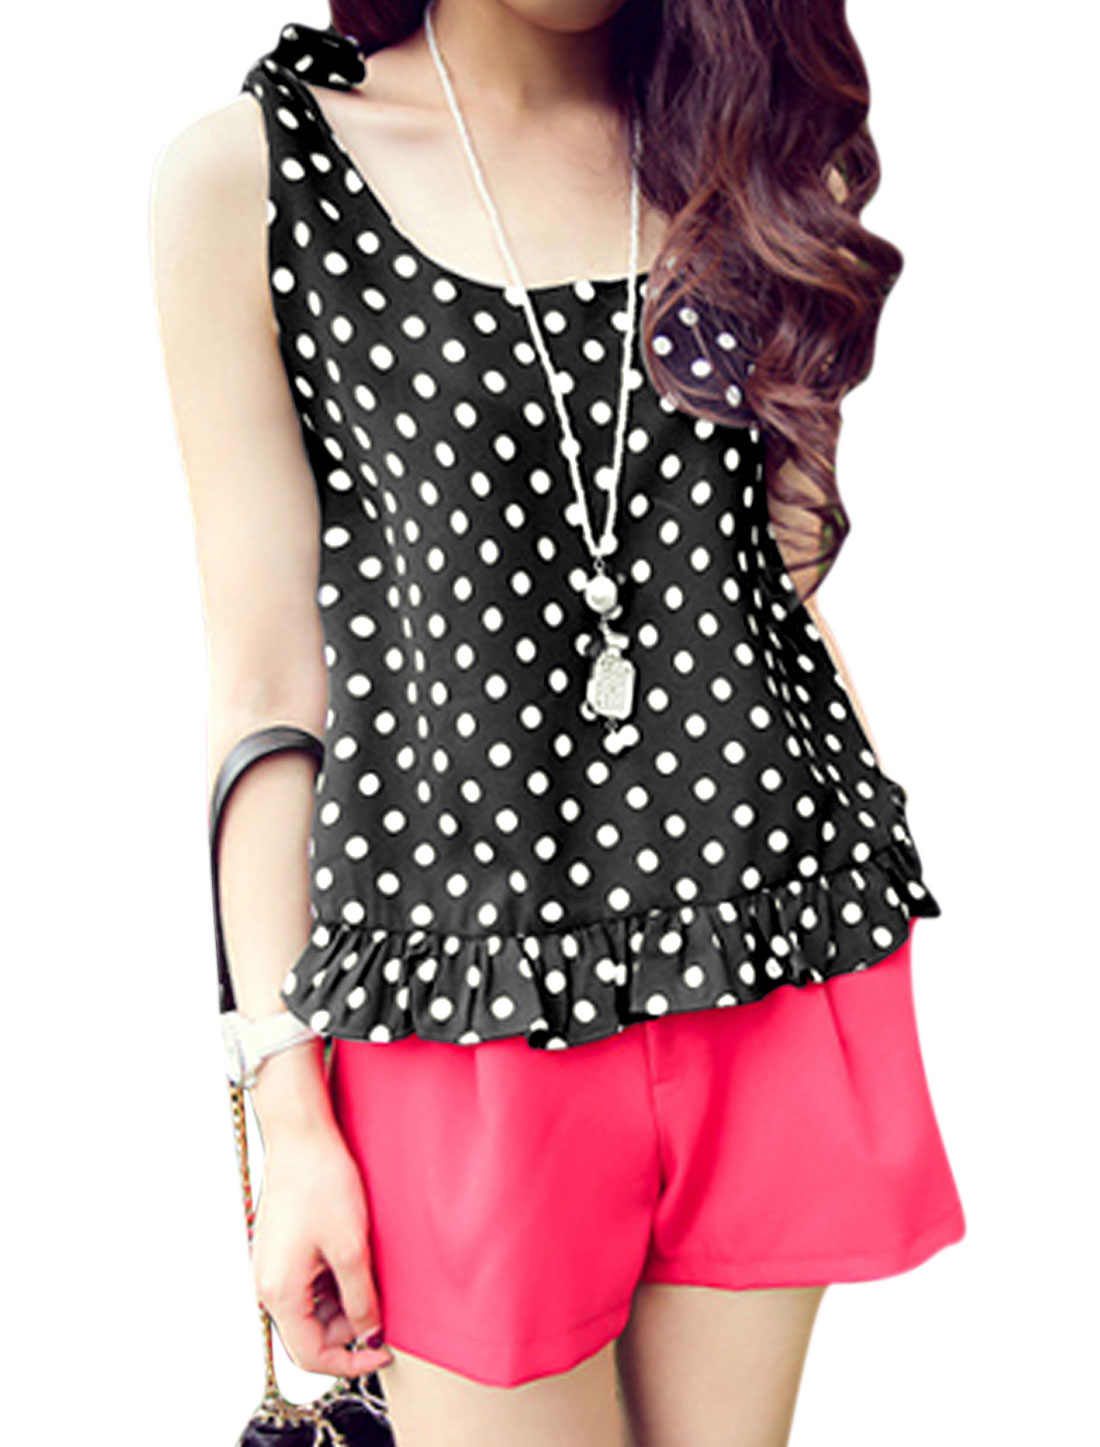 Lady Pullover Self Tie Shoulder Straps Dots Pattern Tank Top Black S